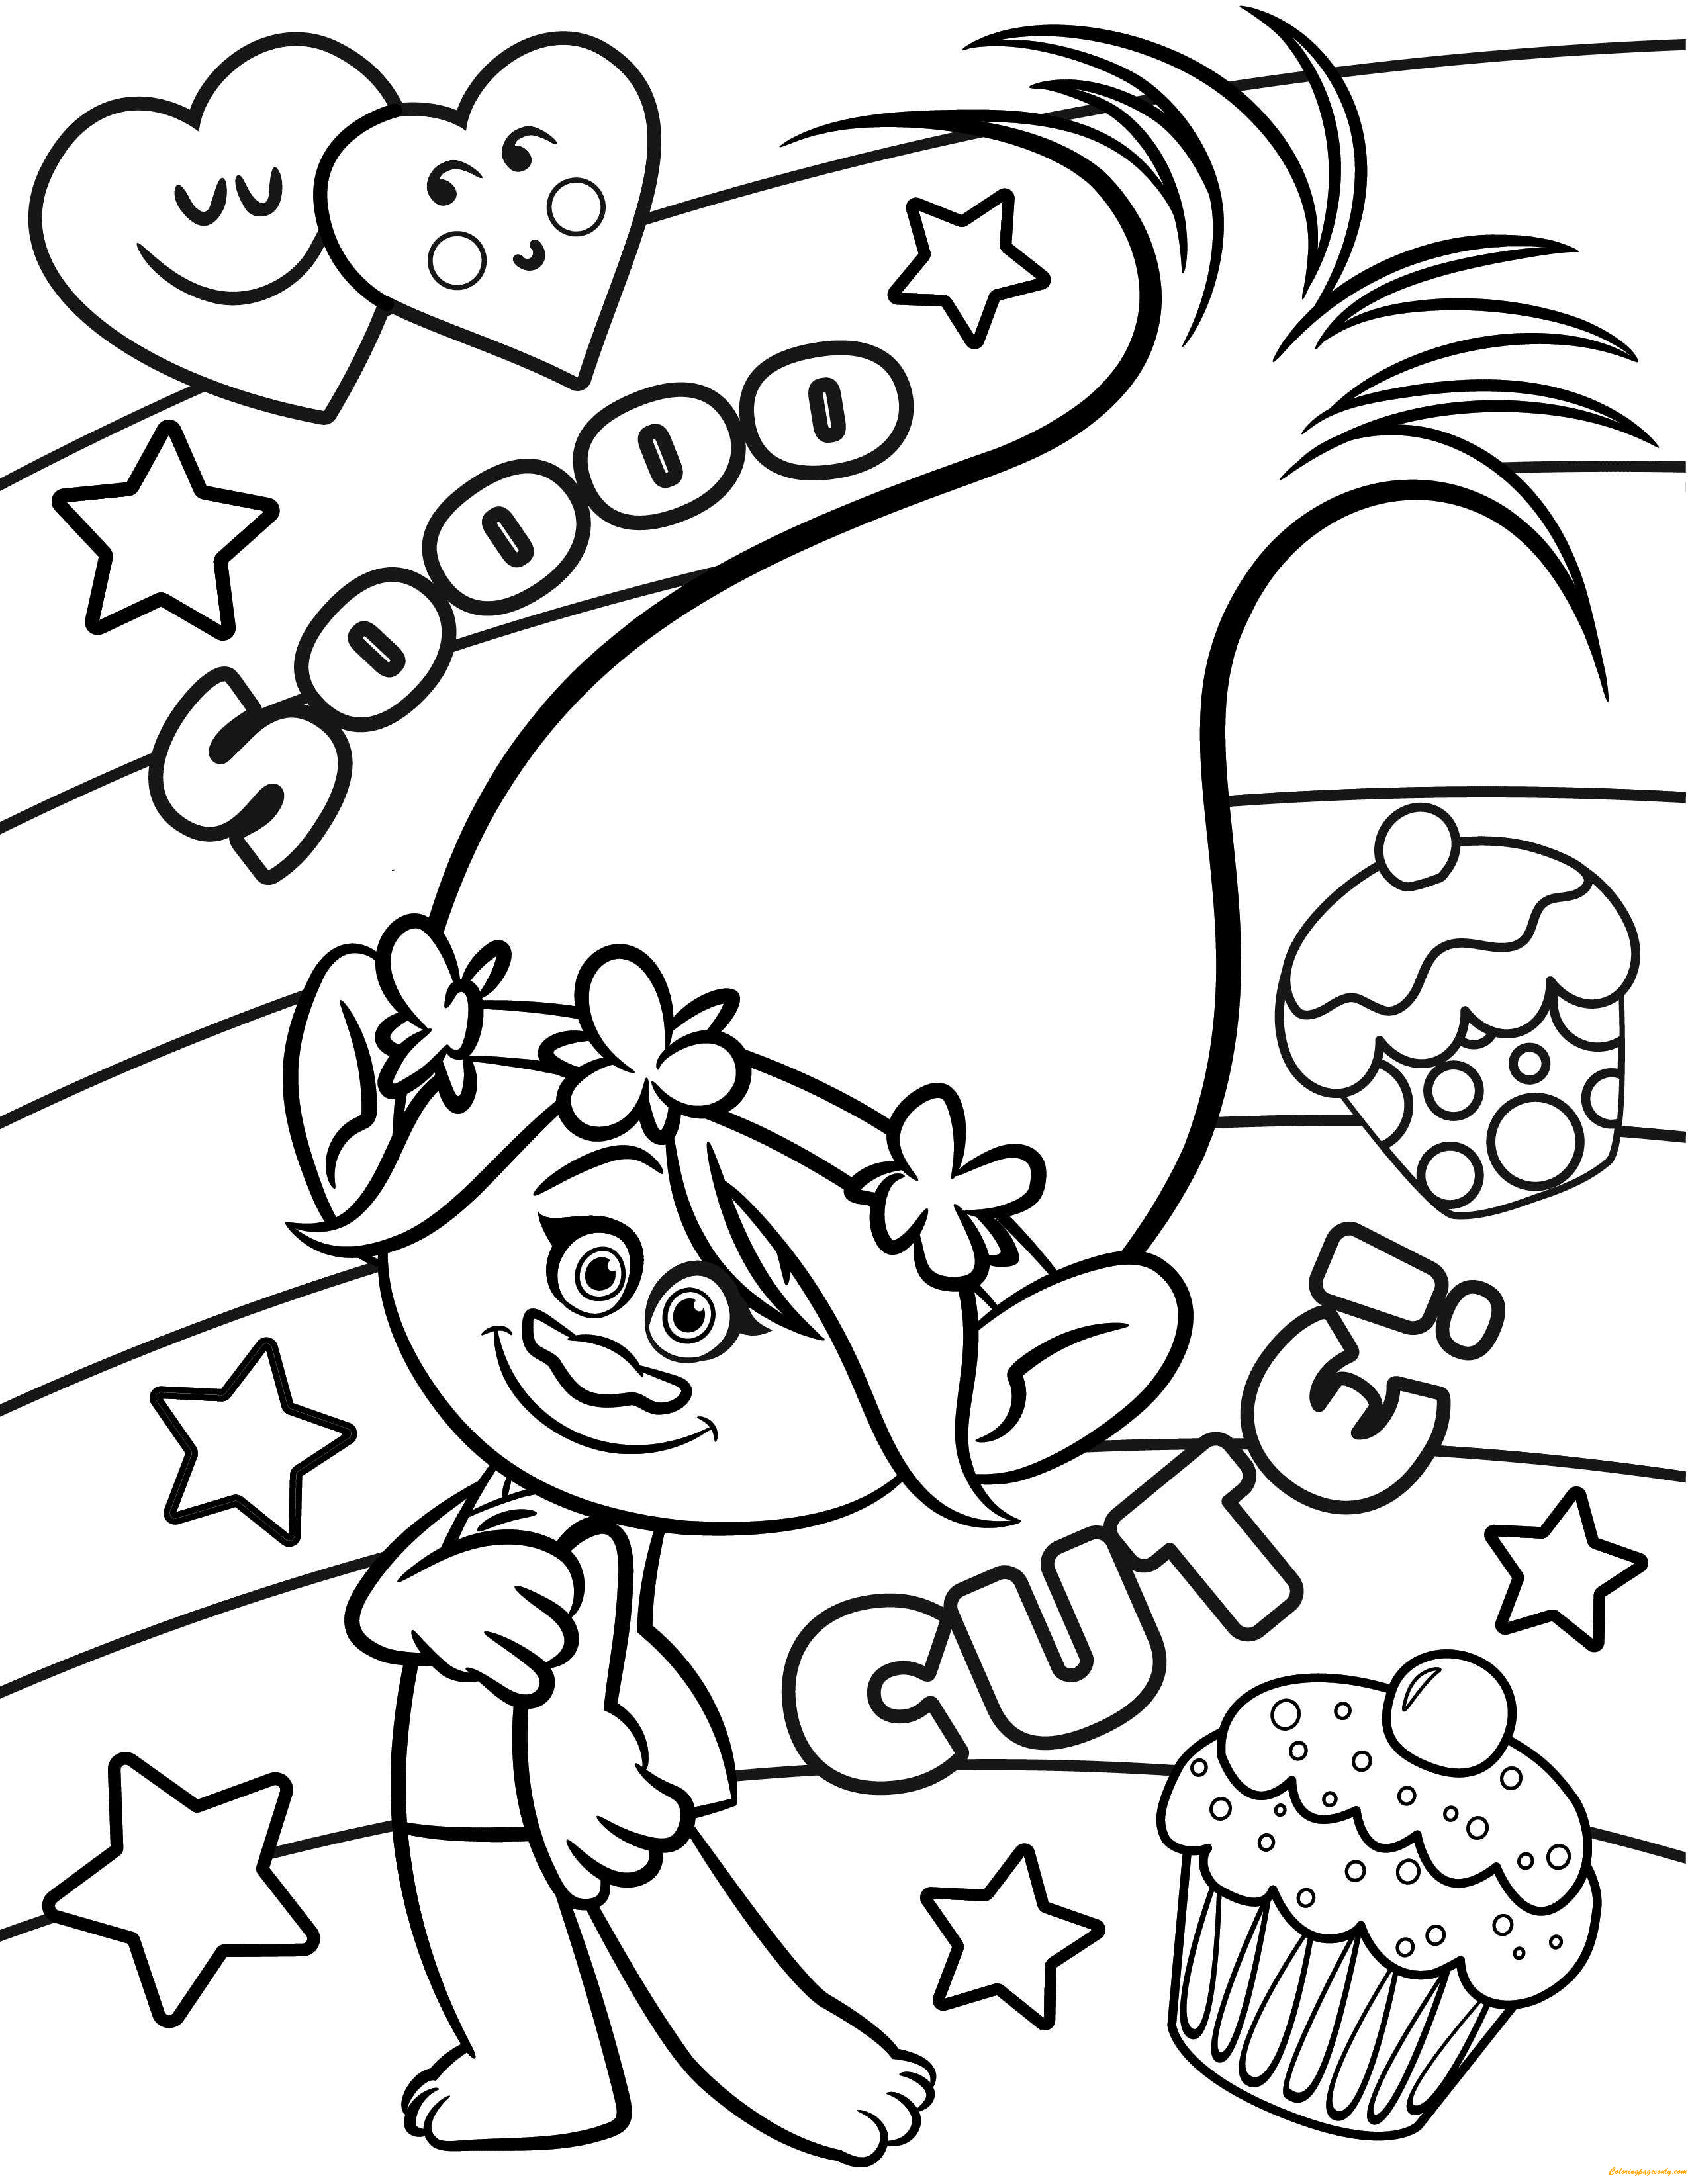 Cute Trolls Coloring Page Free